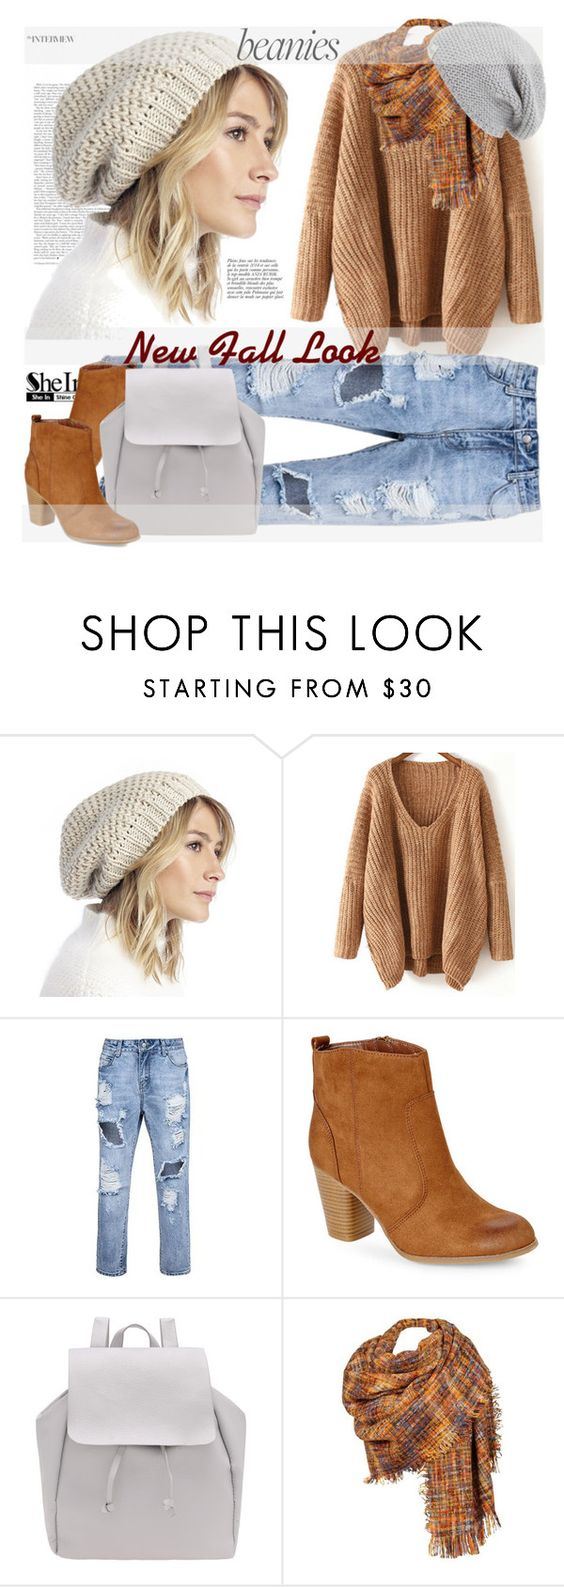 """New Fall Look by Sofi"" by sofi-danka ❤ liked on Polyvore featuring Sole Society, Madden Girl, Black Rivet, UGG Australia, Anja, beanies and shein"